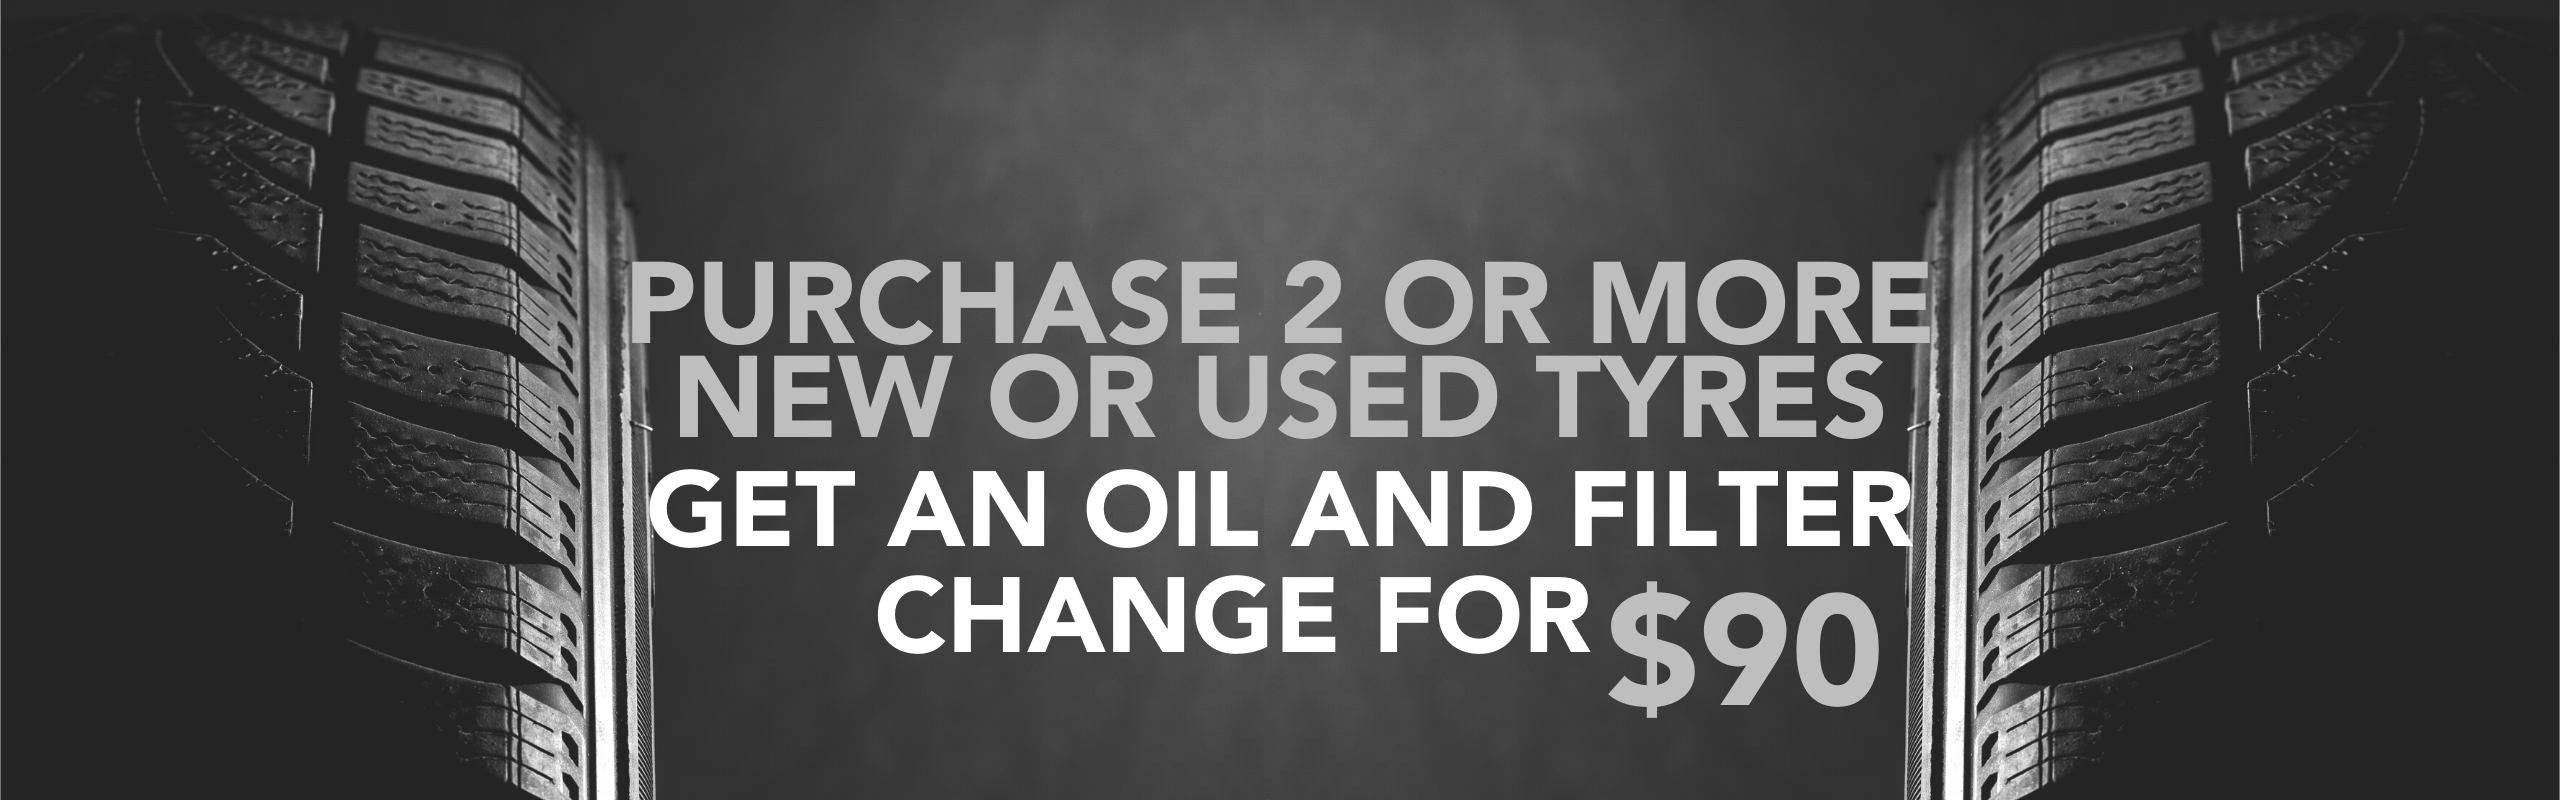 Purchase 2 or more new or used tyres and get an oil and filter change for $90